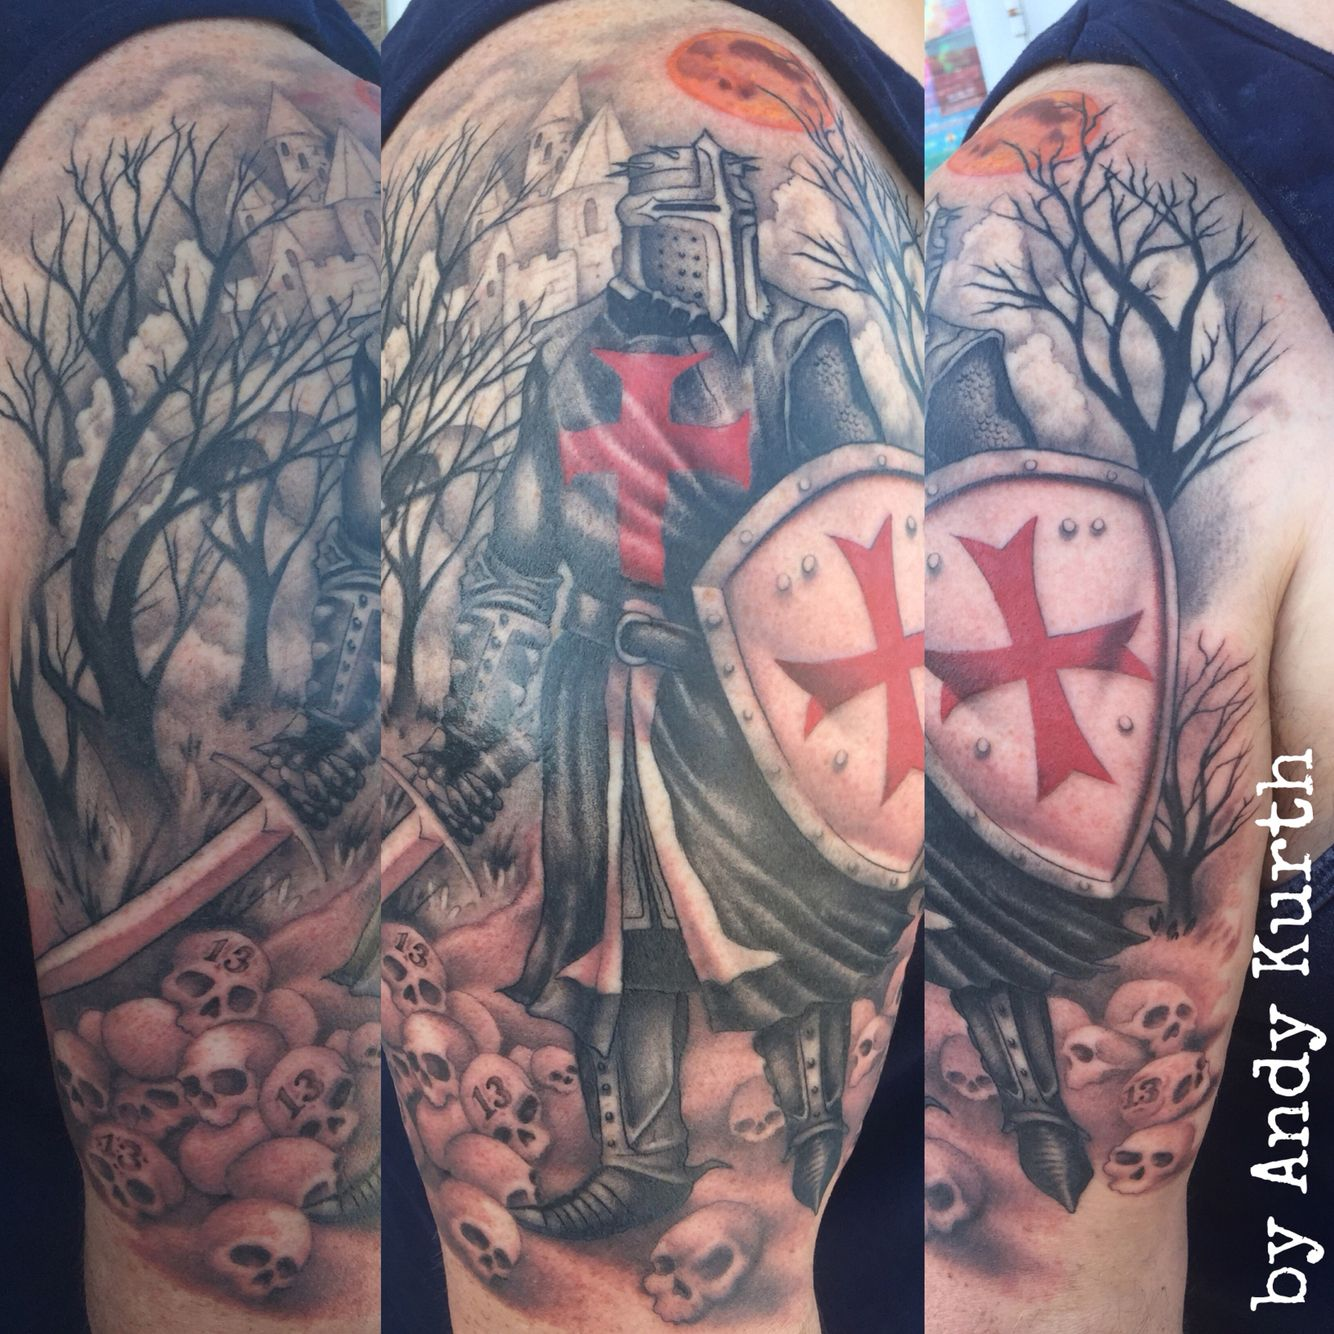 Electric chair tattoo - Knights Templar Tattoo I Finished Up Last Week We Ll Be Adding More At Electric Chairknights